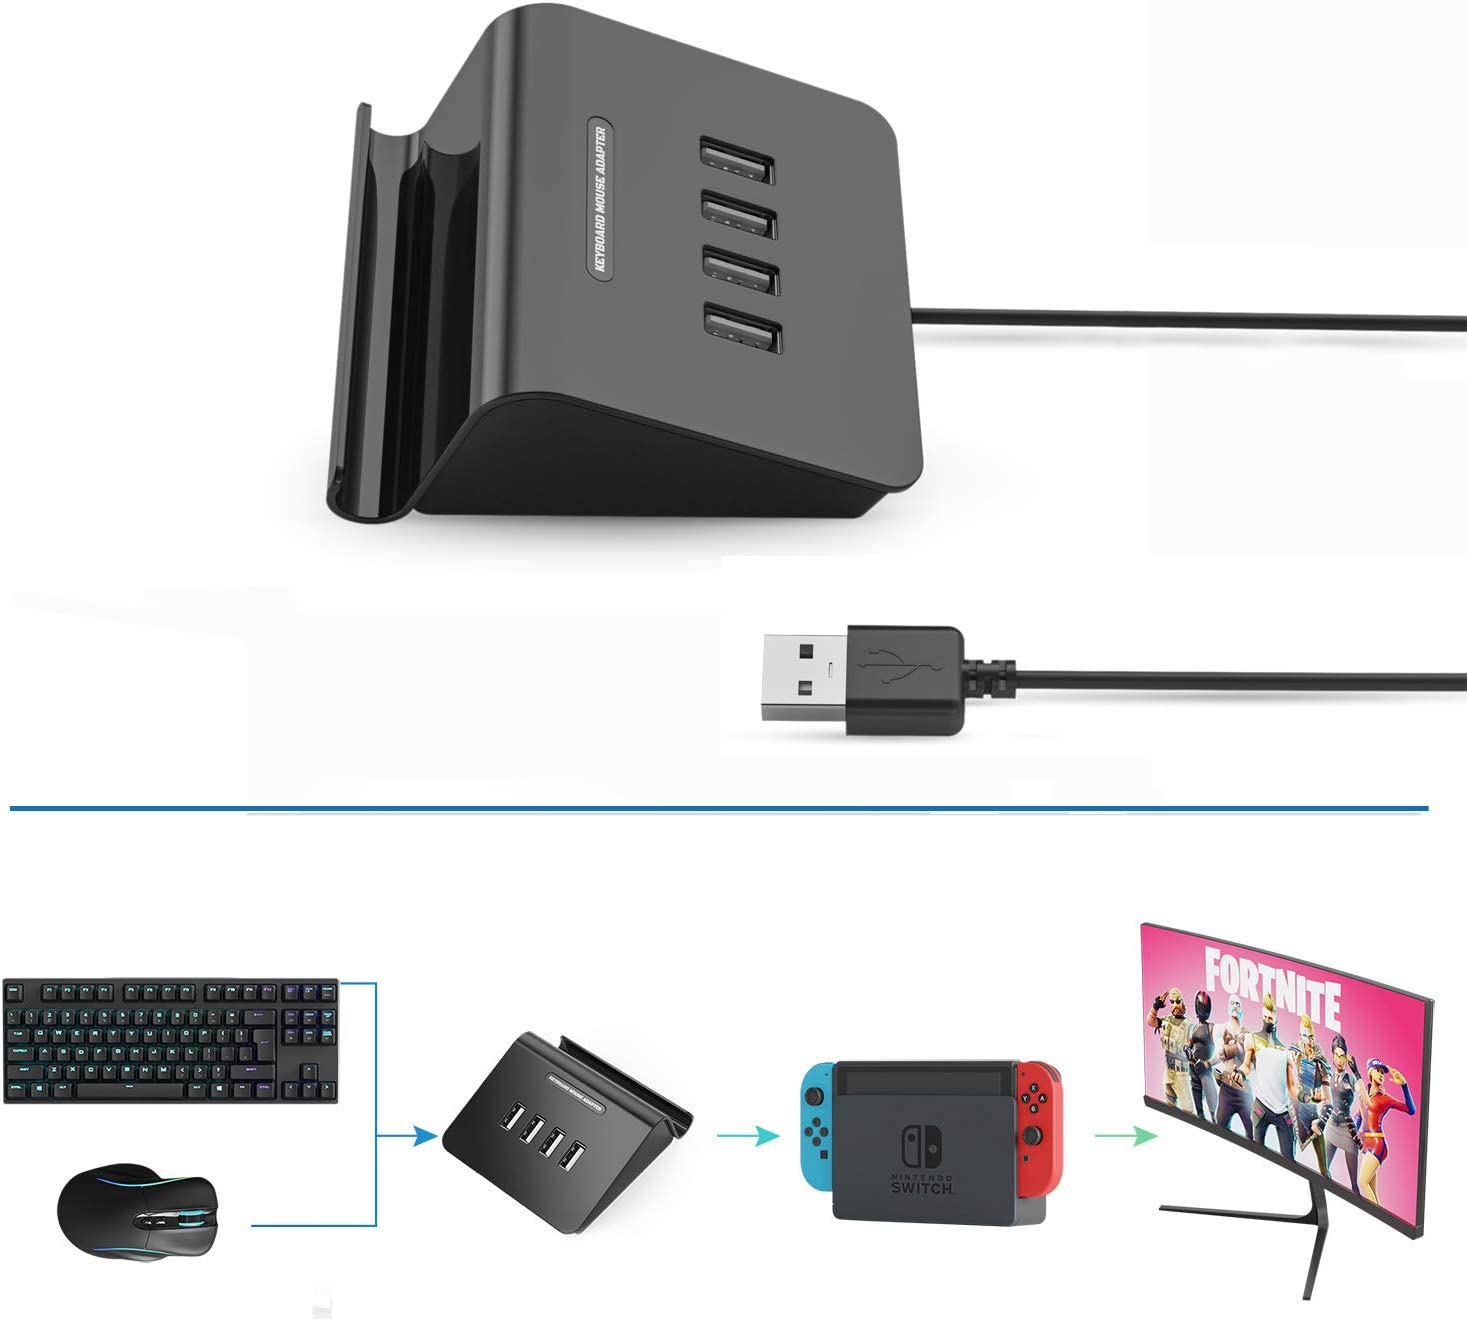 Amazon com: Delta essentials Keyboard and Mouse Adapter for PS4 XBOX